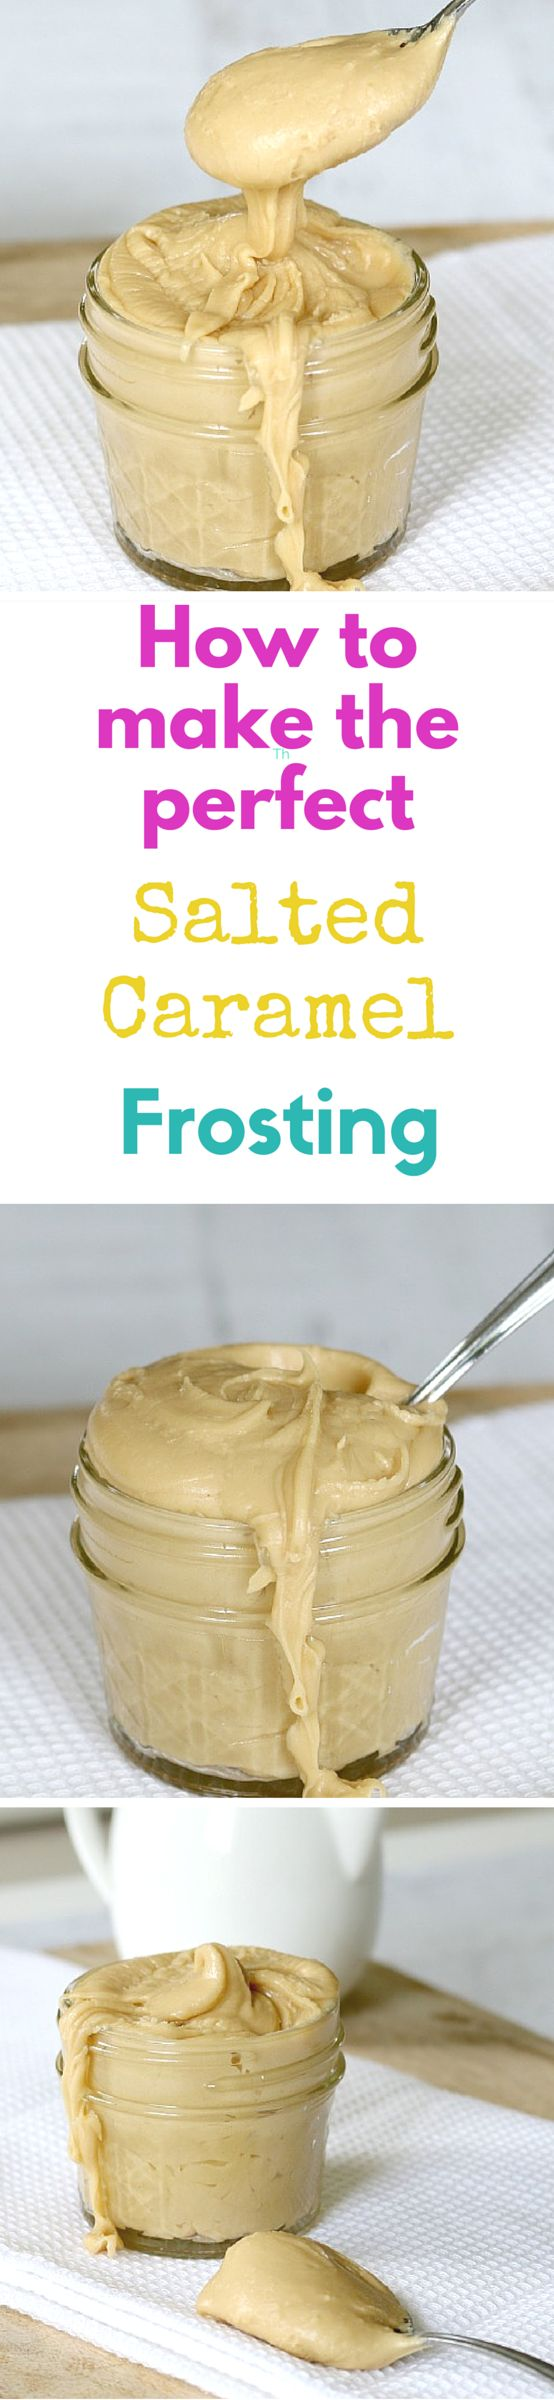 This is the easiest salted caramel frosting recipe ever! It takes no time at all to make and is perfect for icing cakes and cupcakes. Yum!